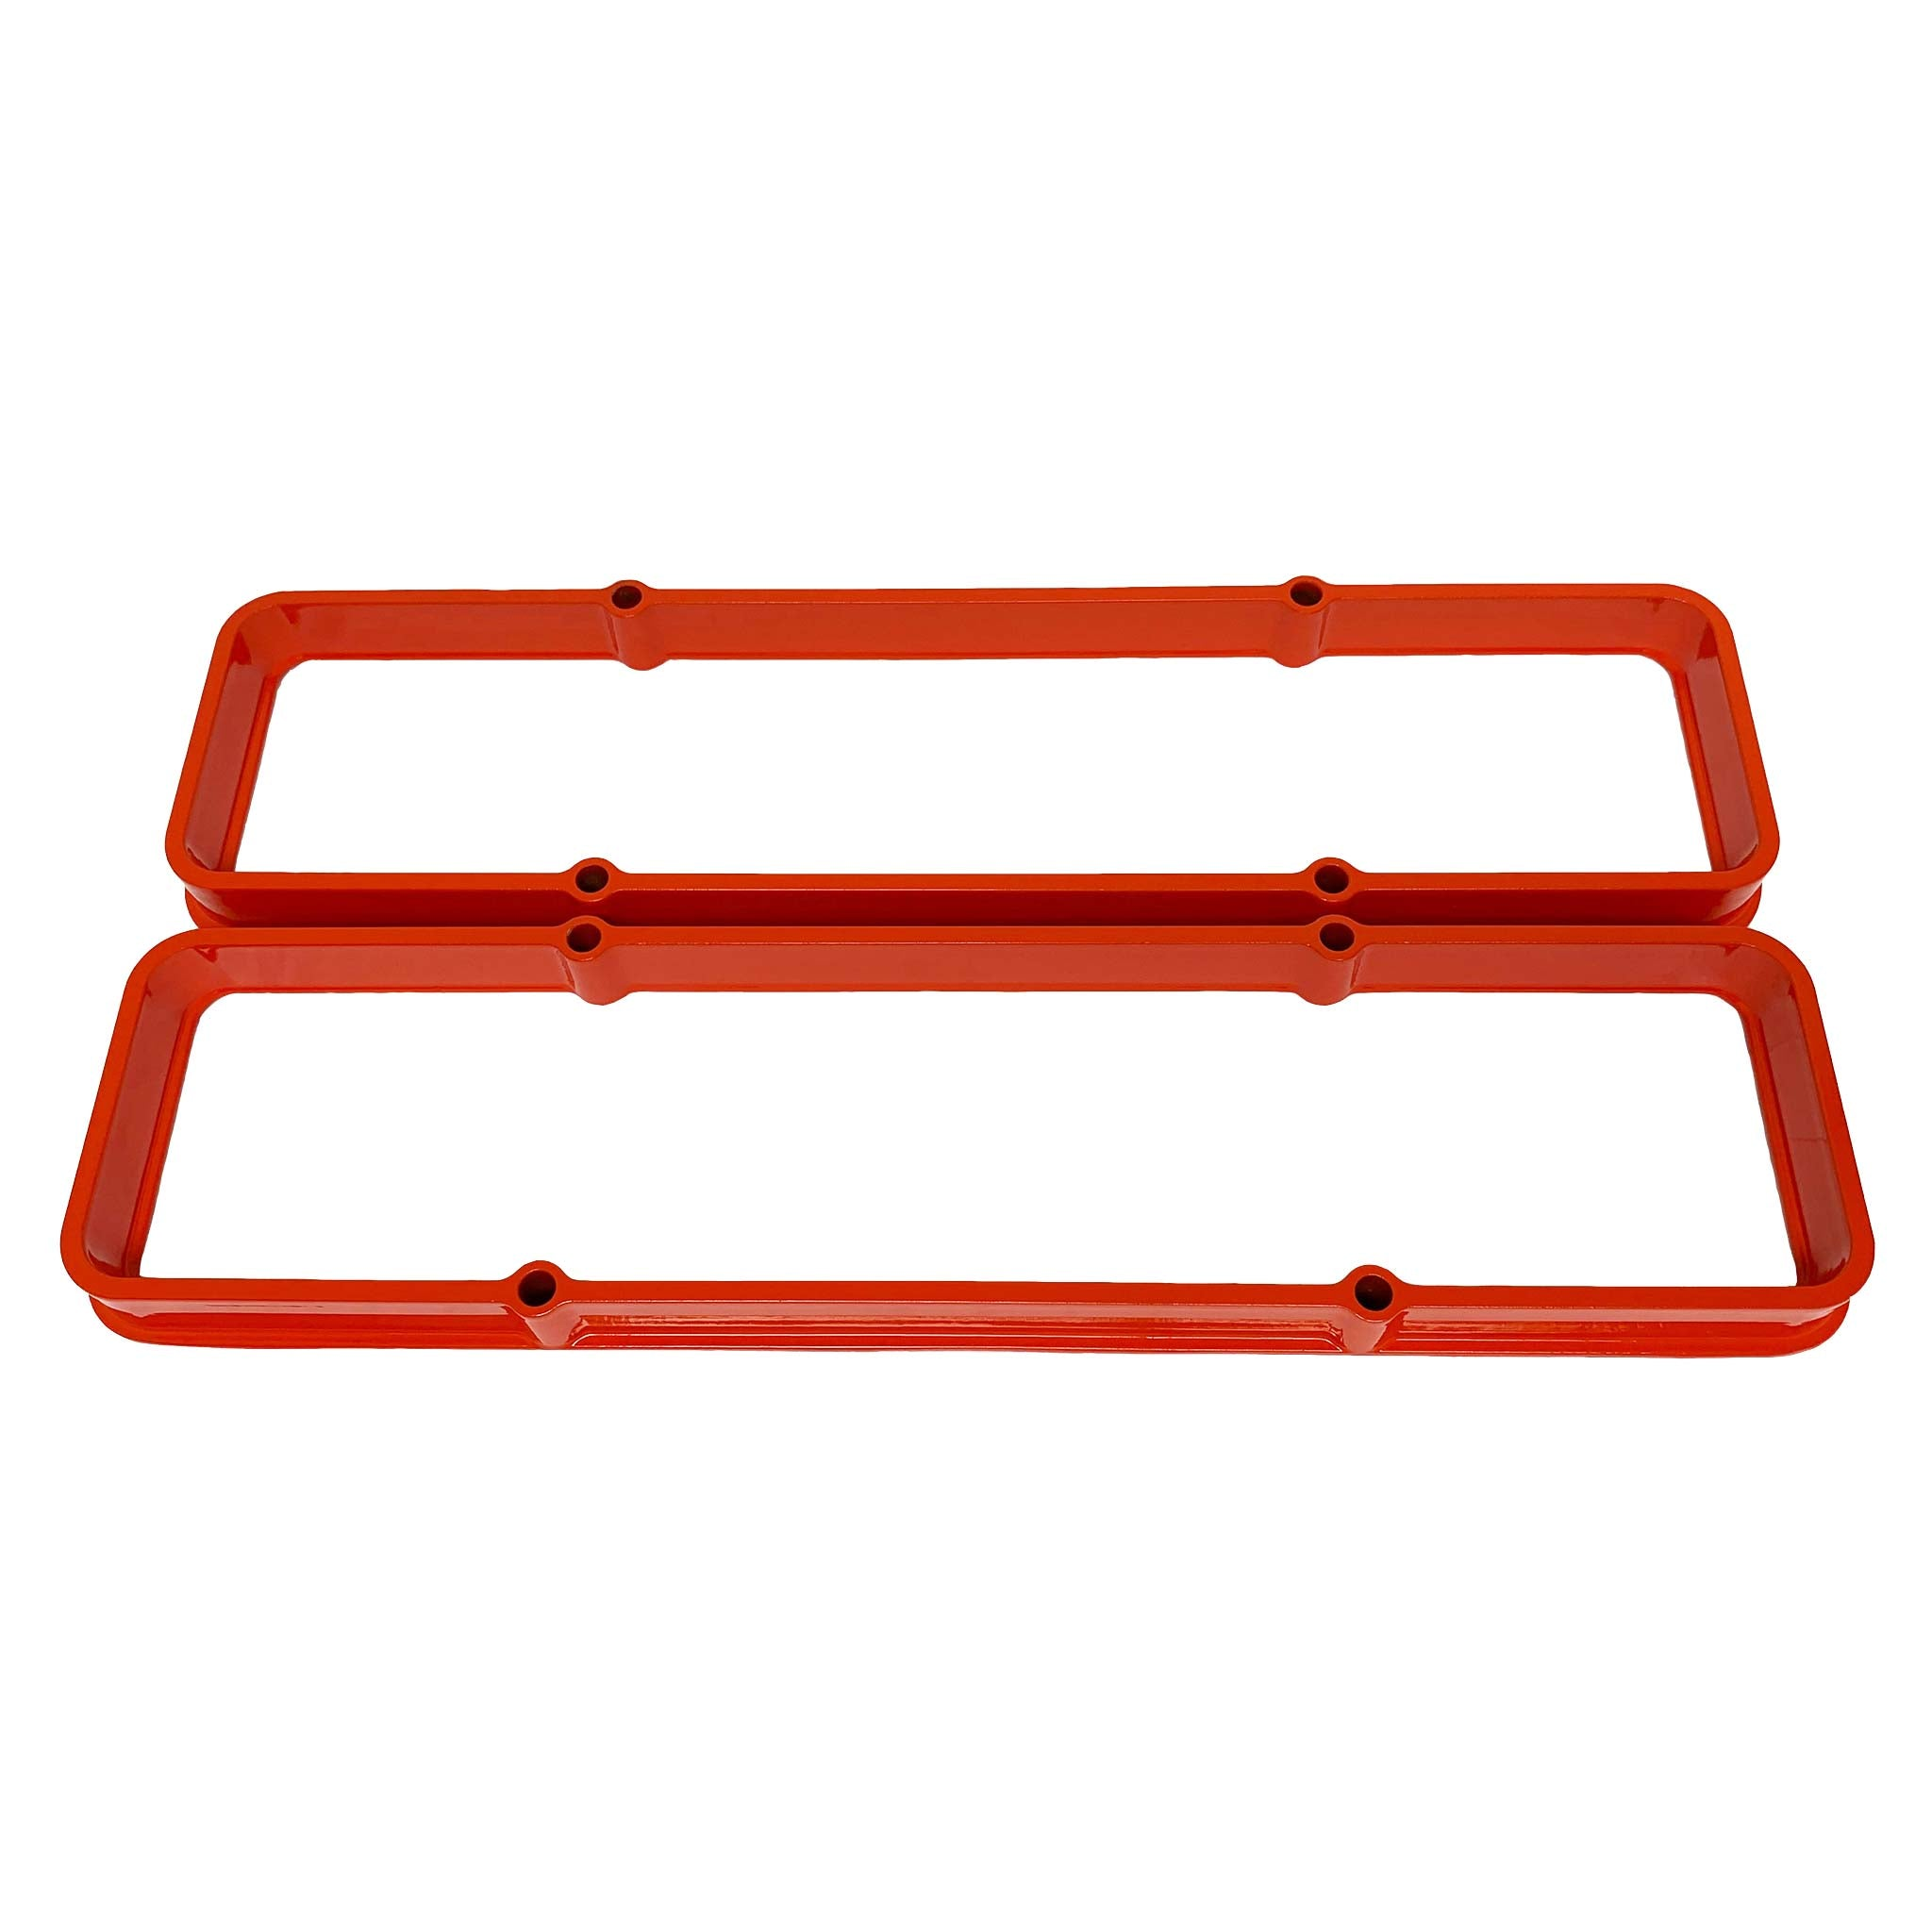 ansen valve cover spacers, chevy small block, orange powder coat